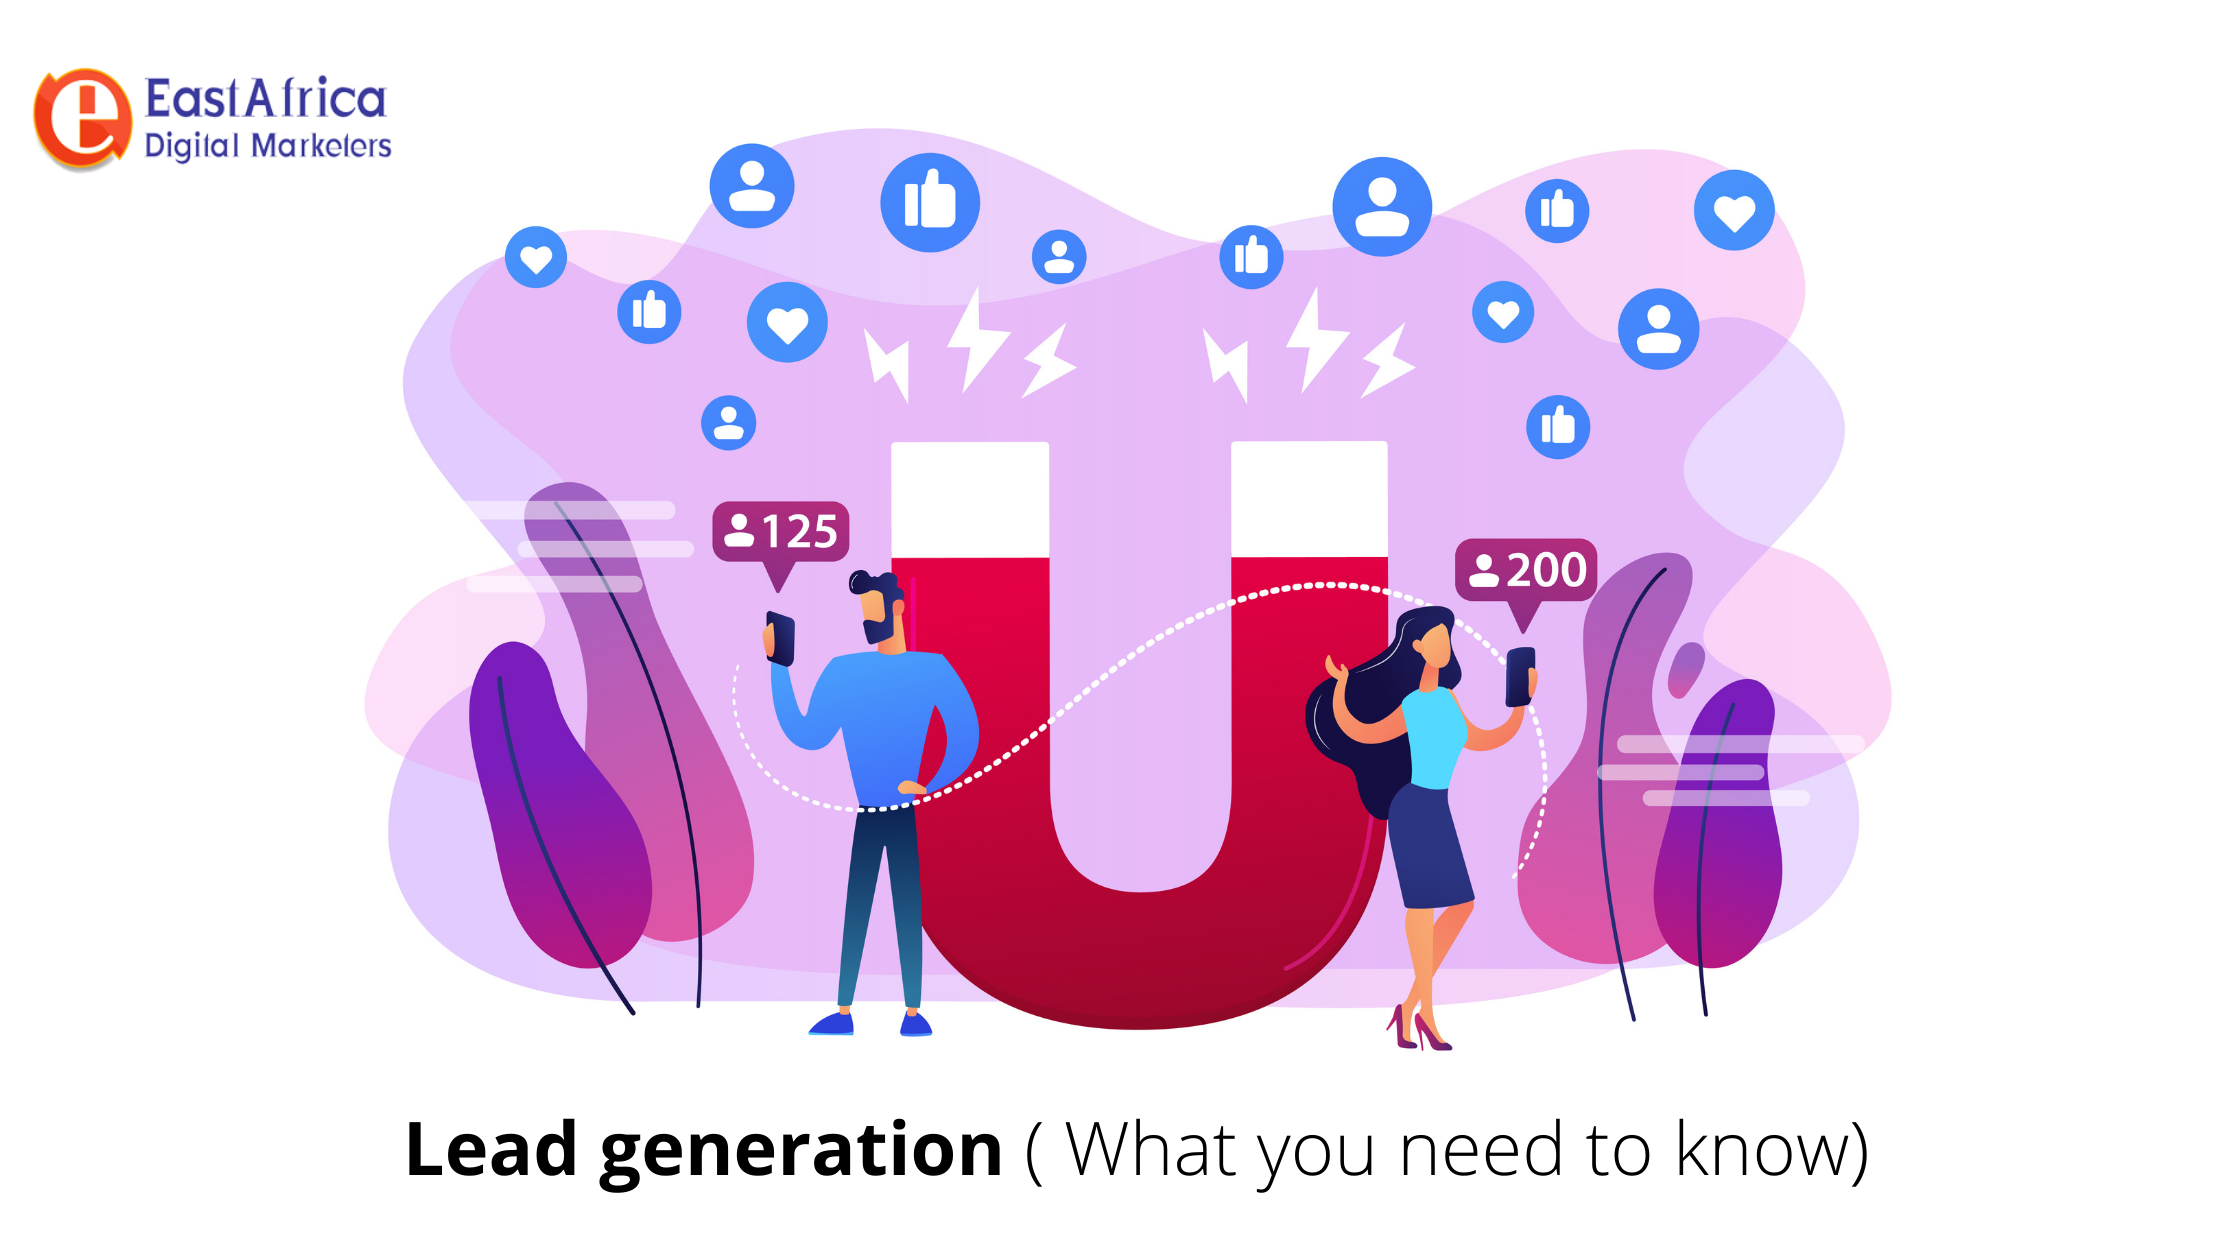 Lead generation (What you need to know)